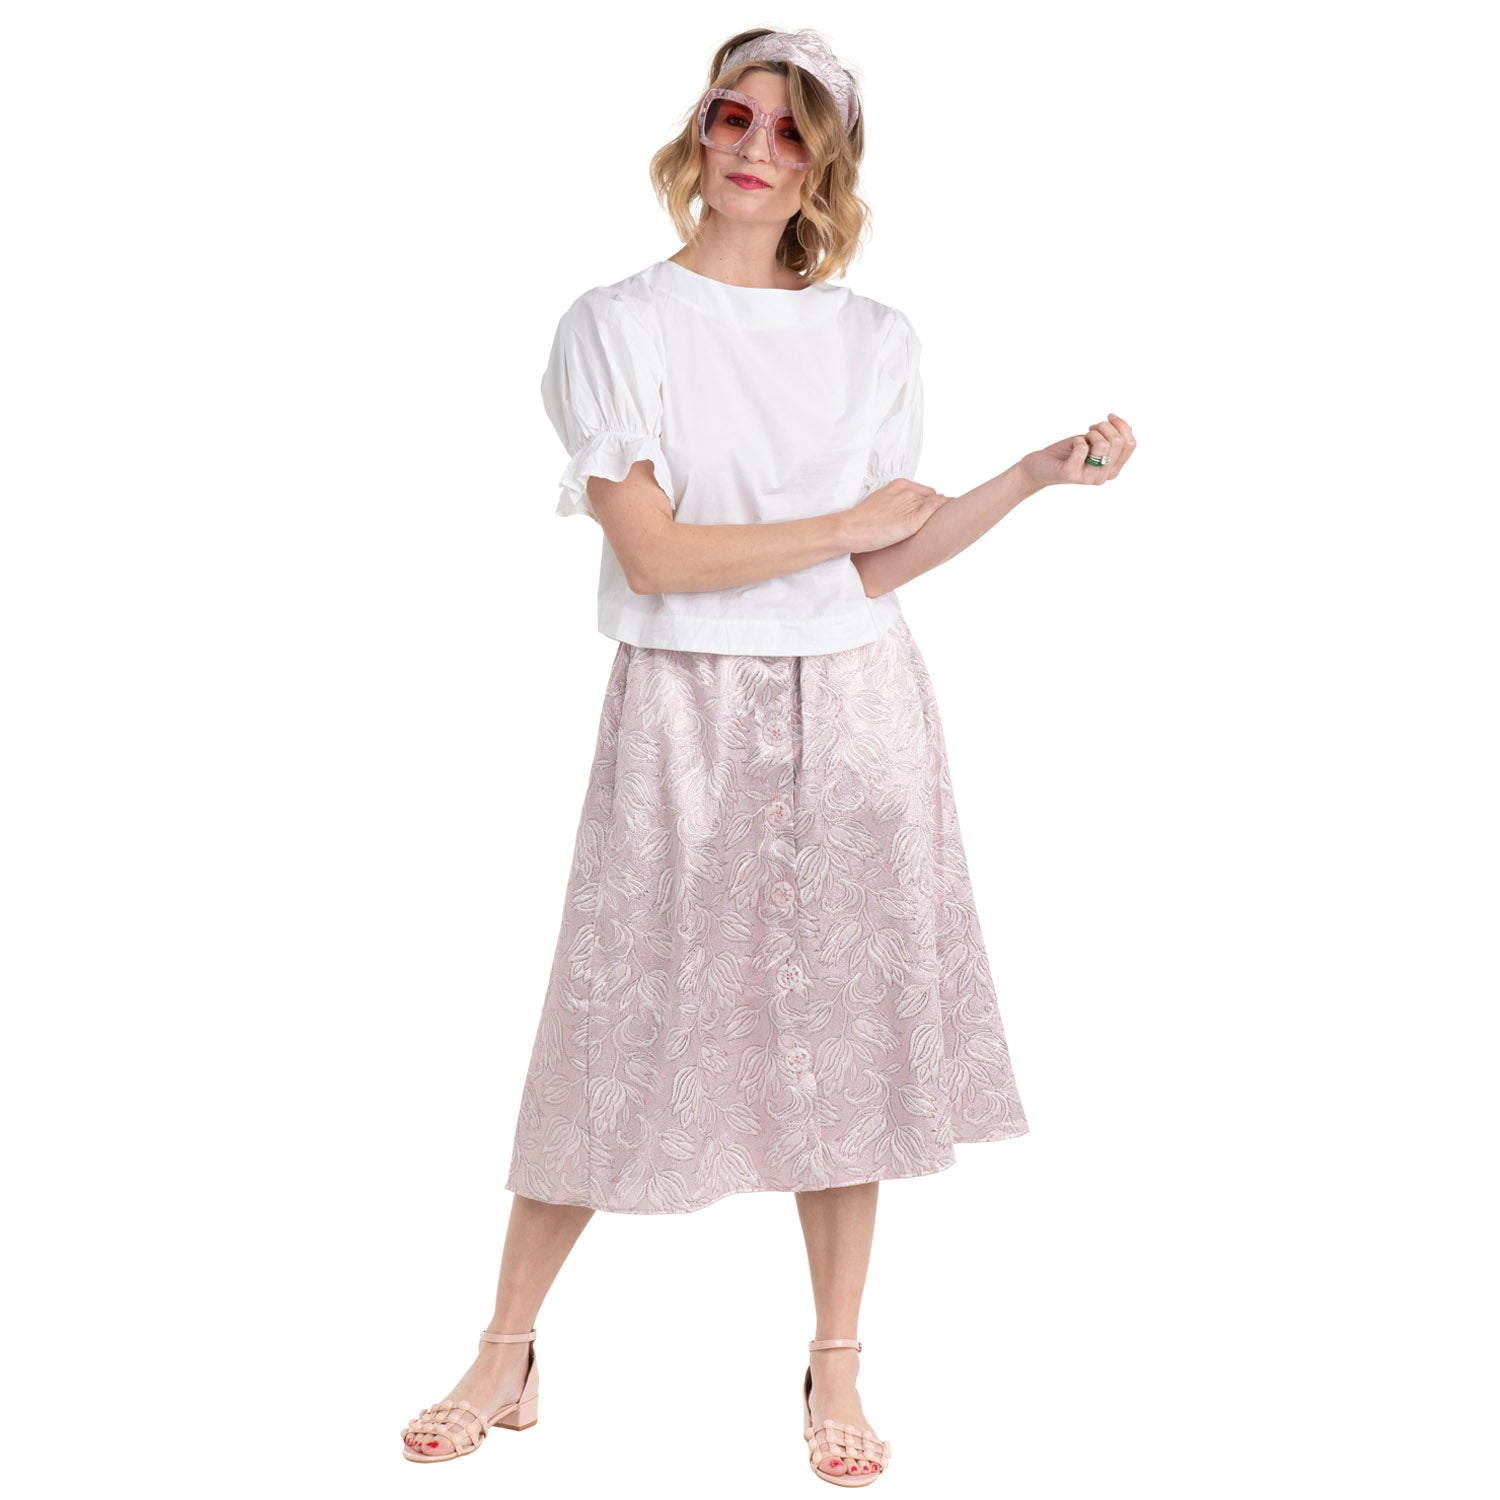 8a52dba6f2e347 ... black tie top tank and samson jeans. paradise puff sleeve top with  metallic pink brocade circle skirt